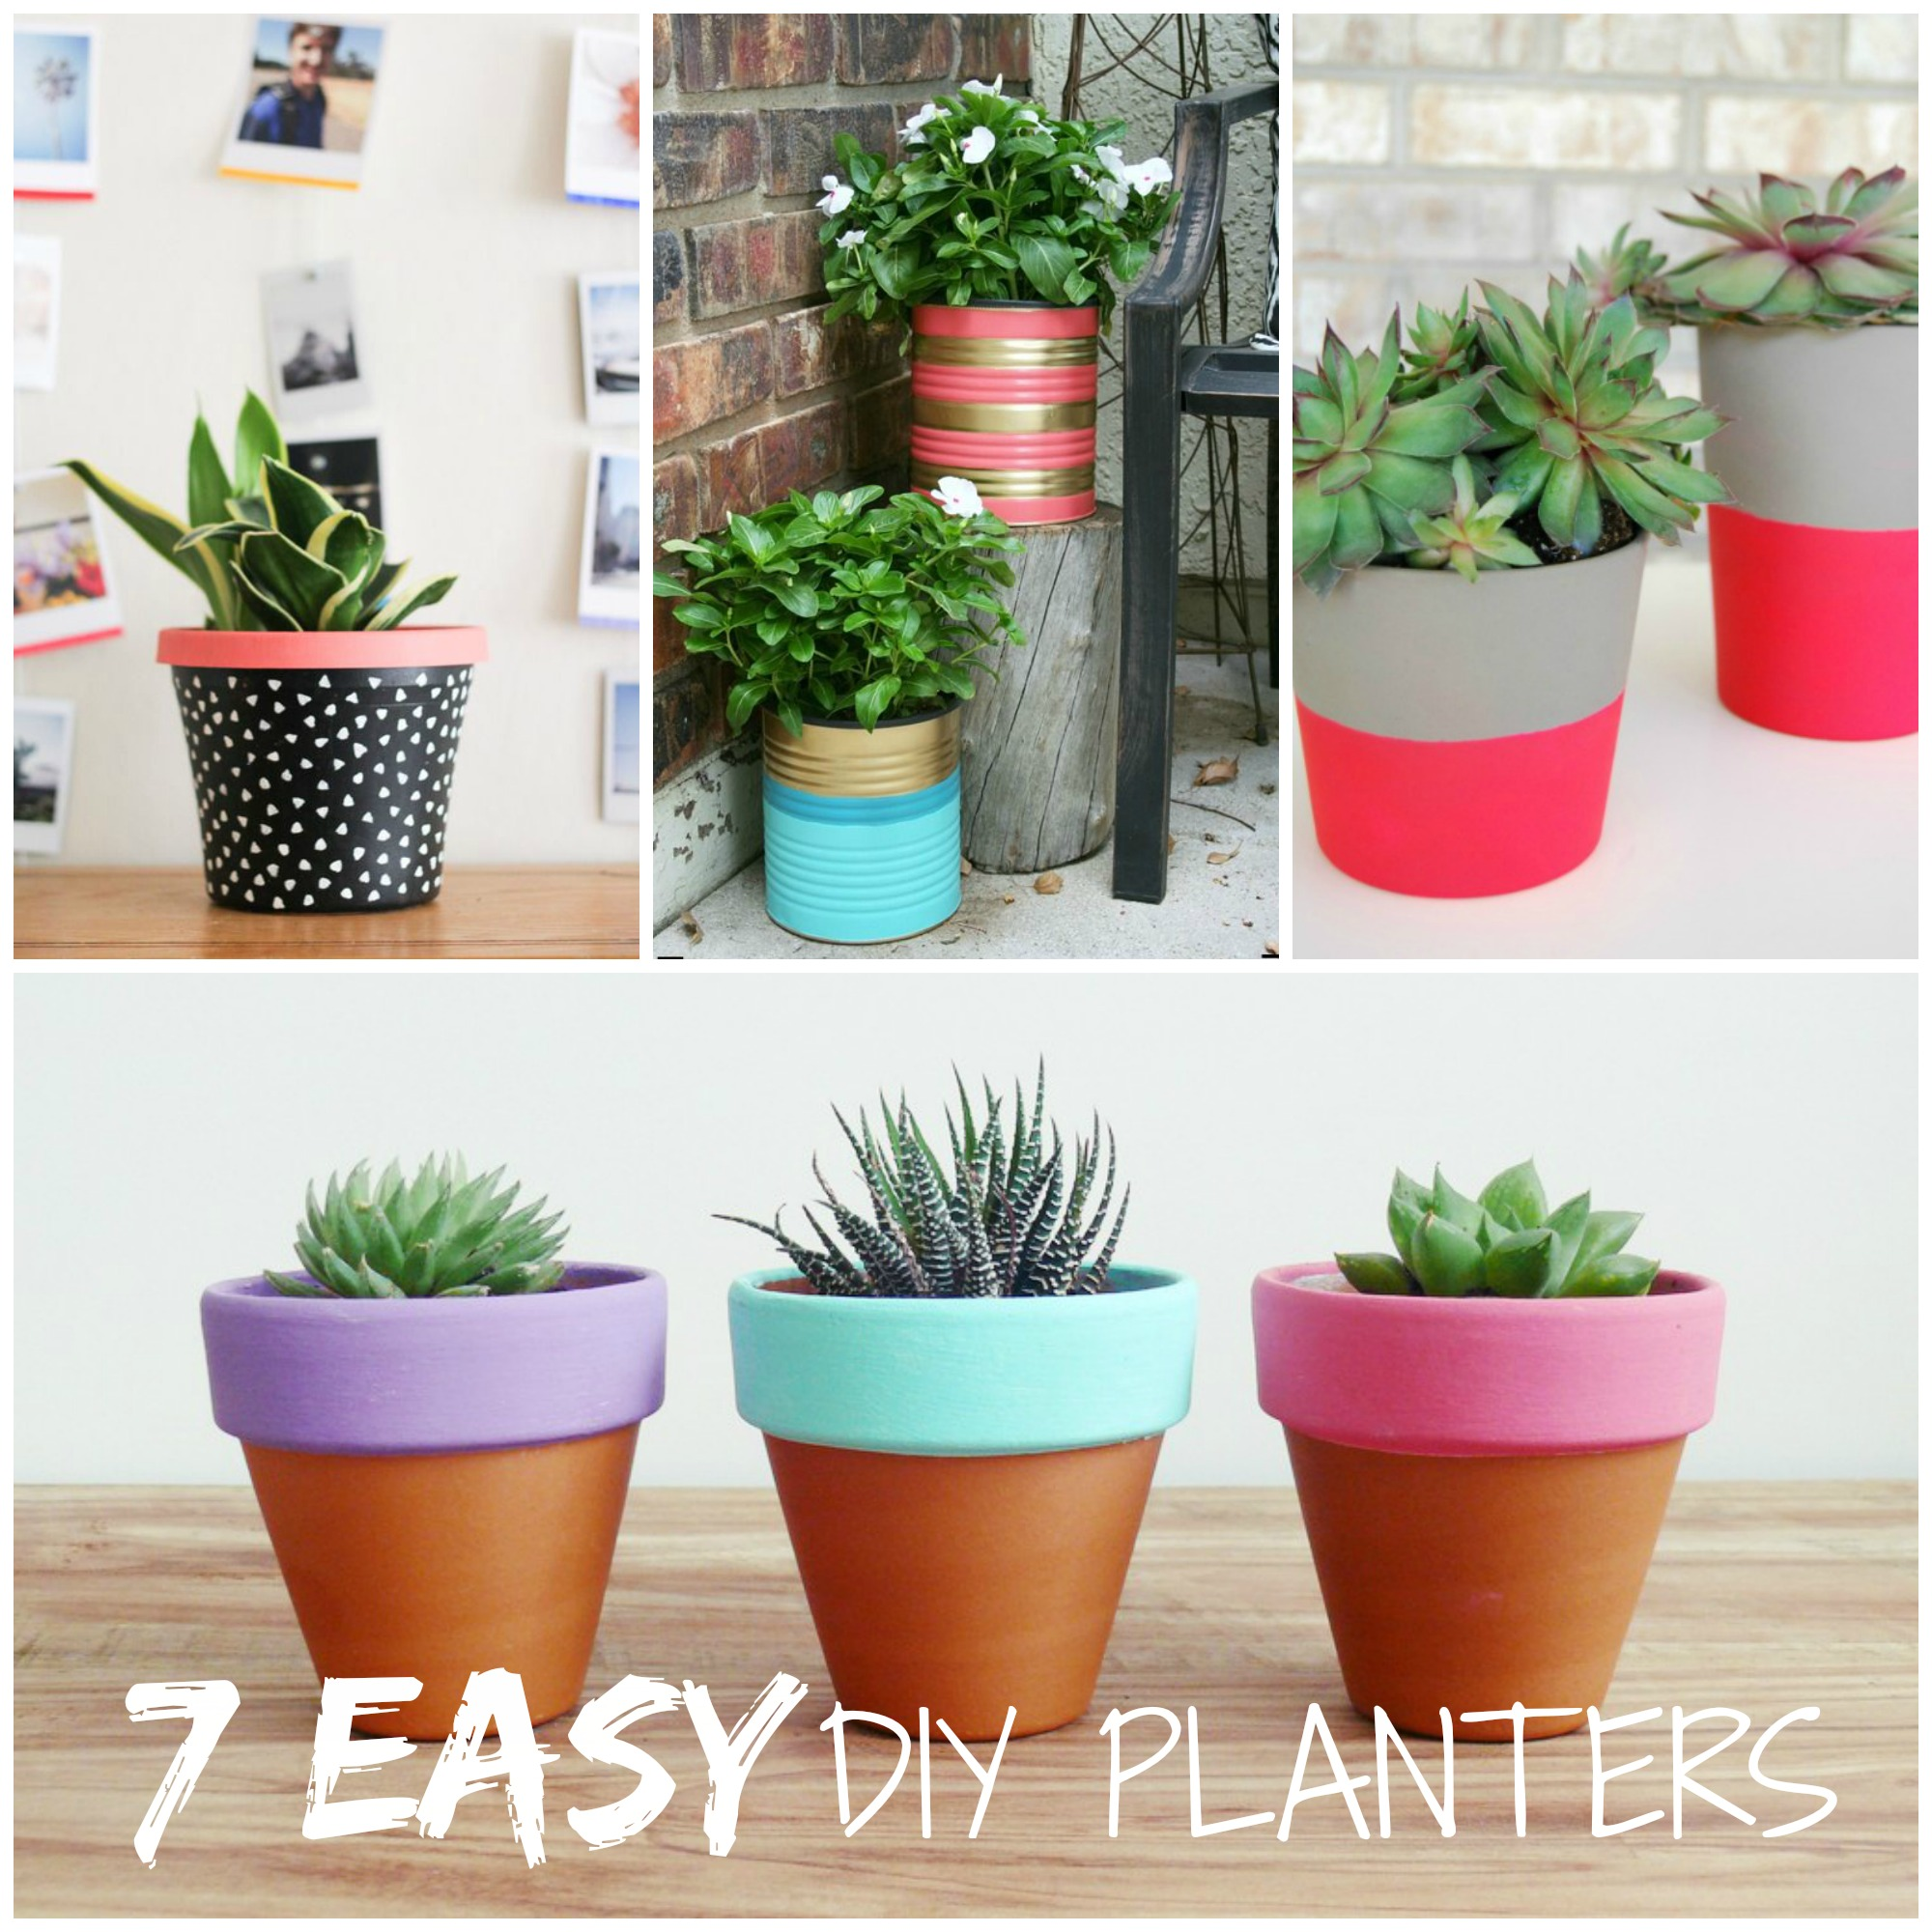 Simple Planters Trending Tuesday 7 Easy Diy Planters Creative Juice